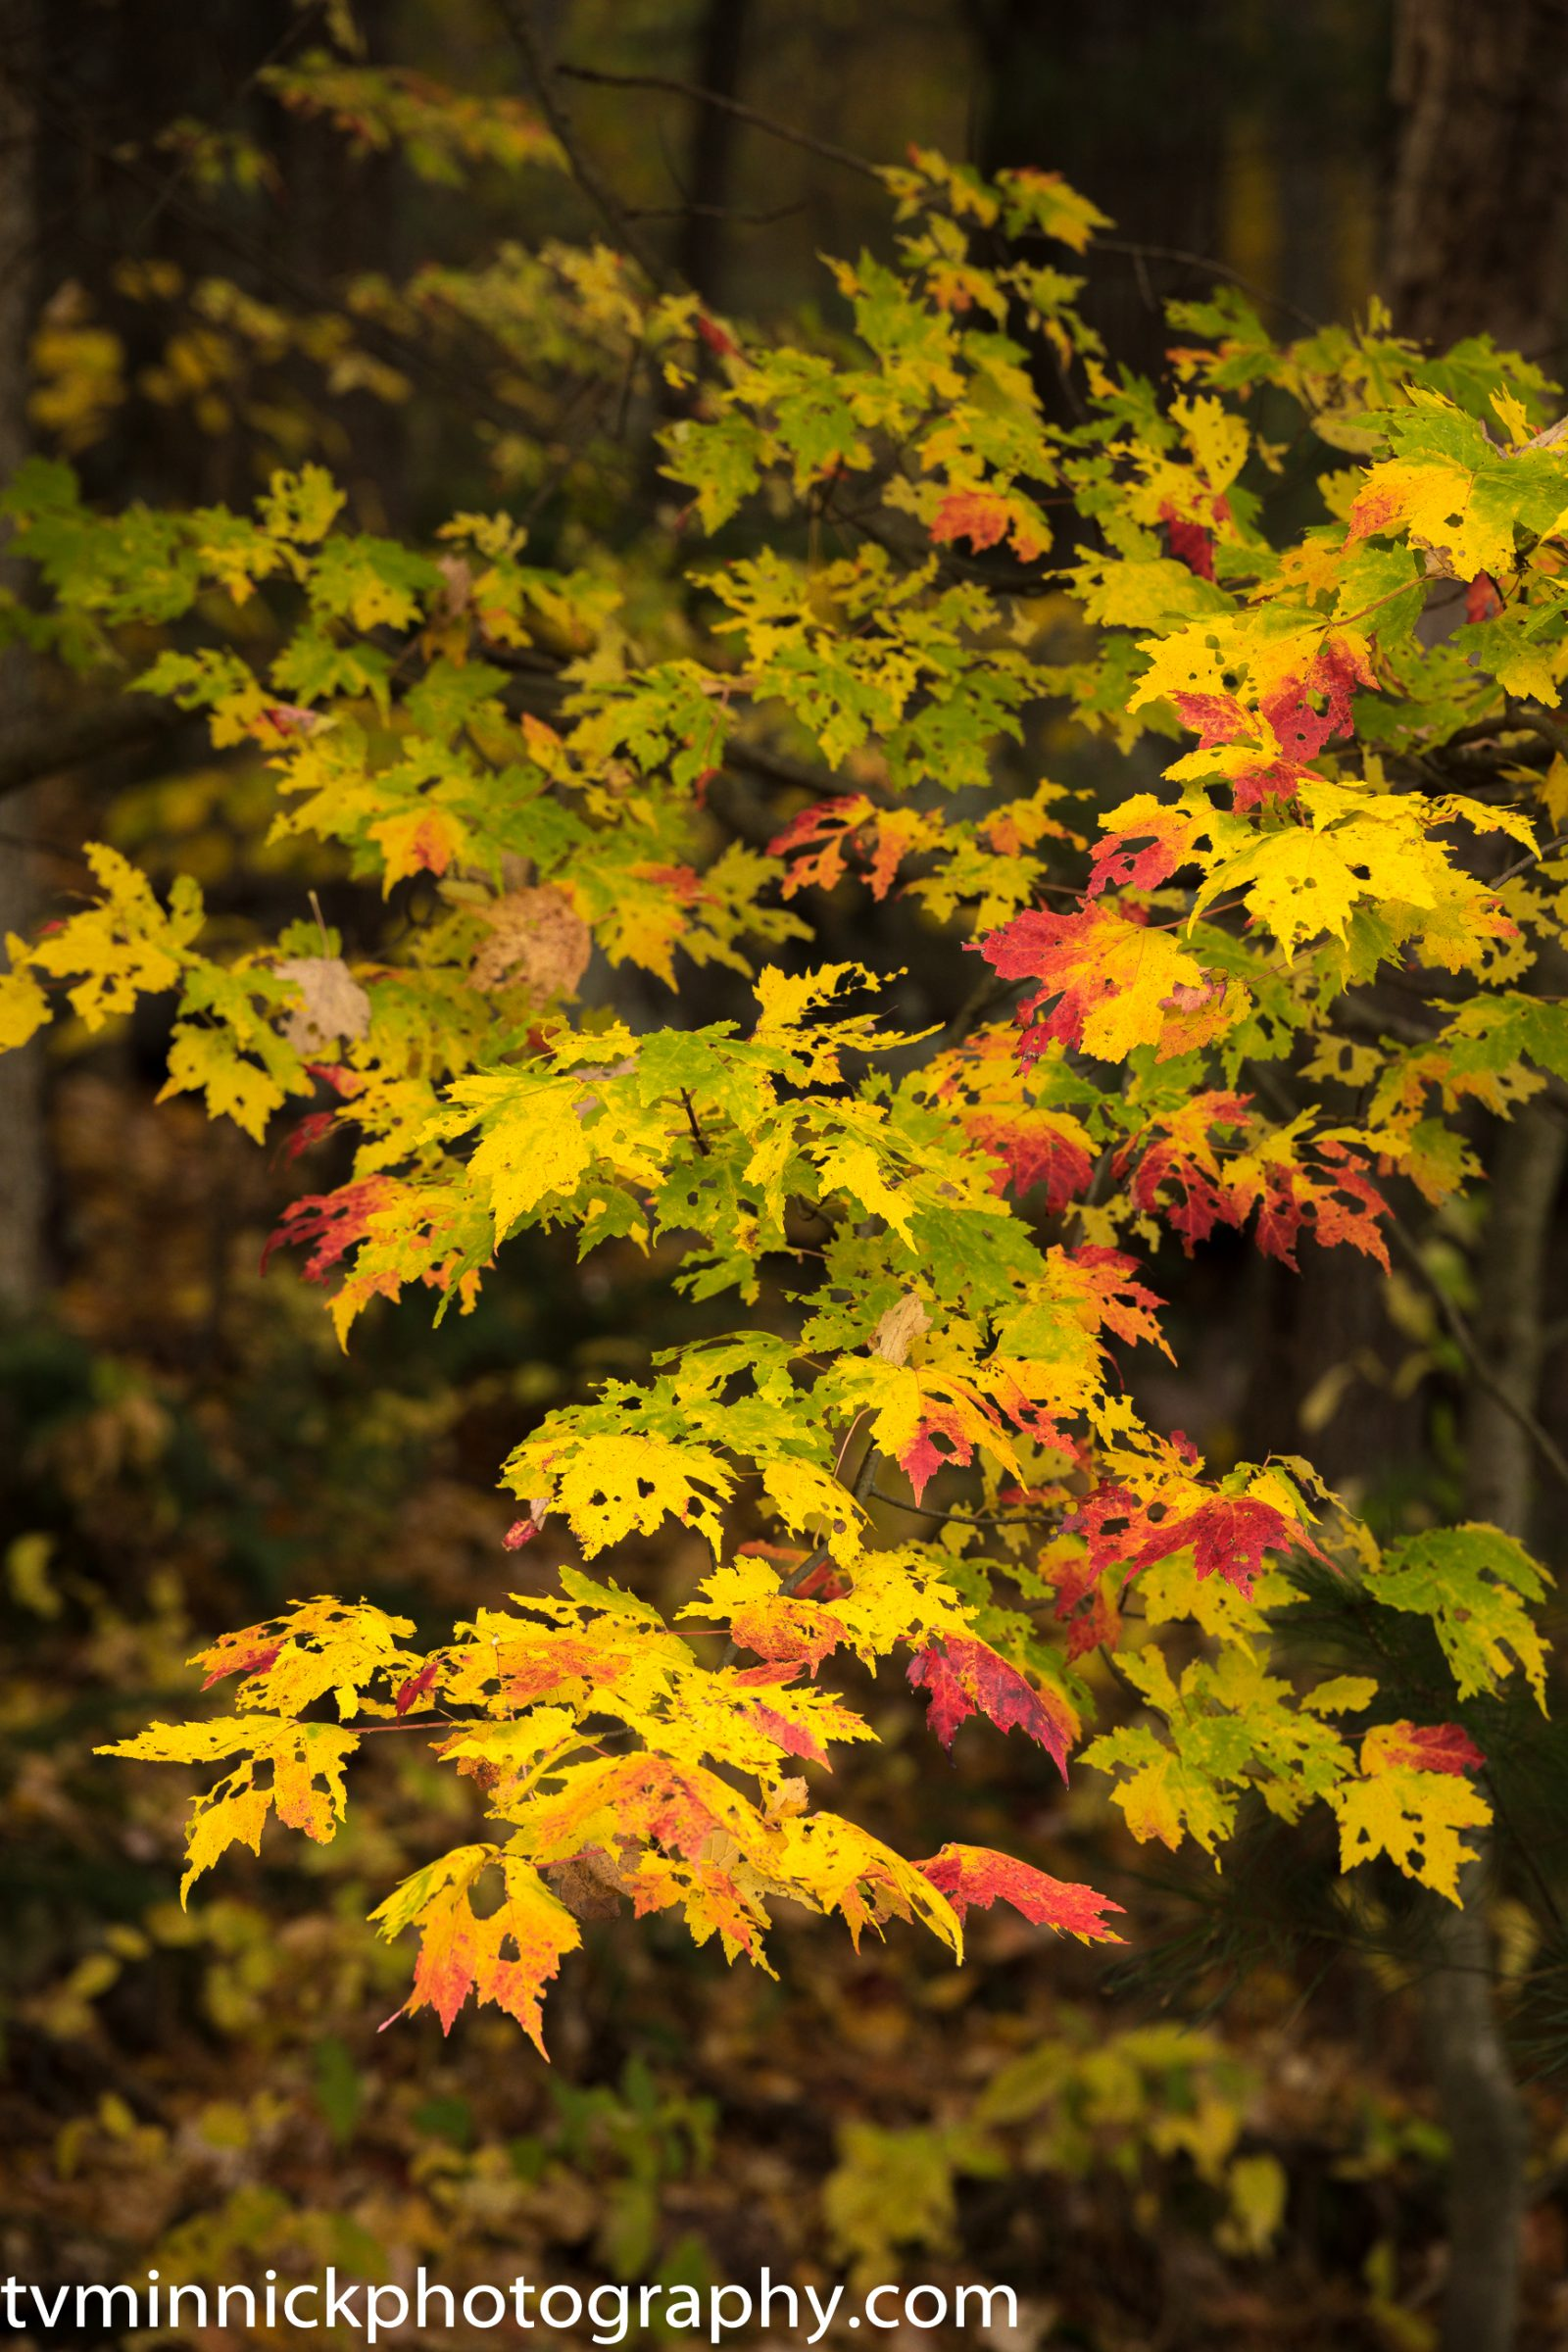 Changing Leaves of Autumn